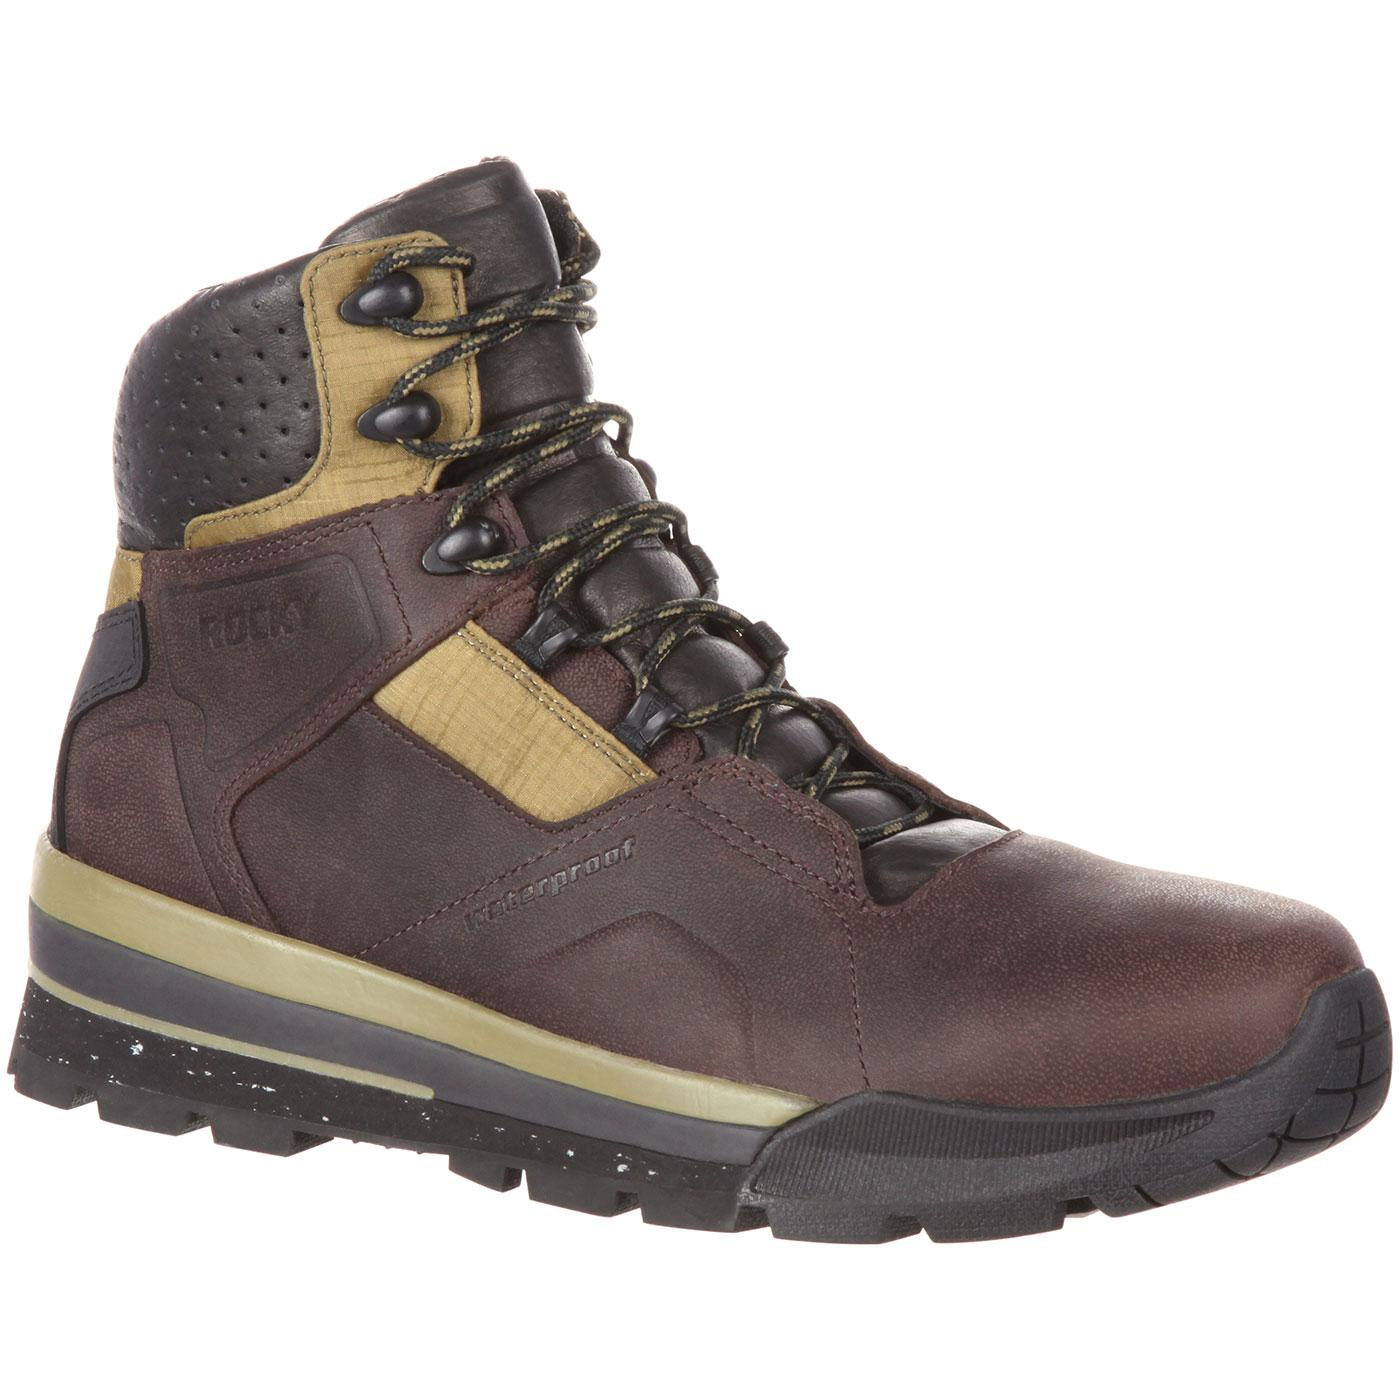 Rocky Mens S2V Exreme Waterproof Hiker Boot